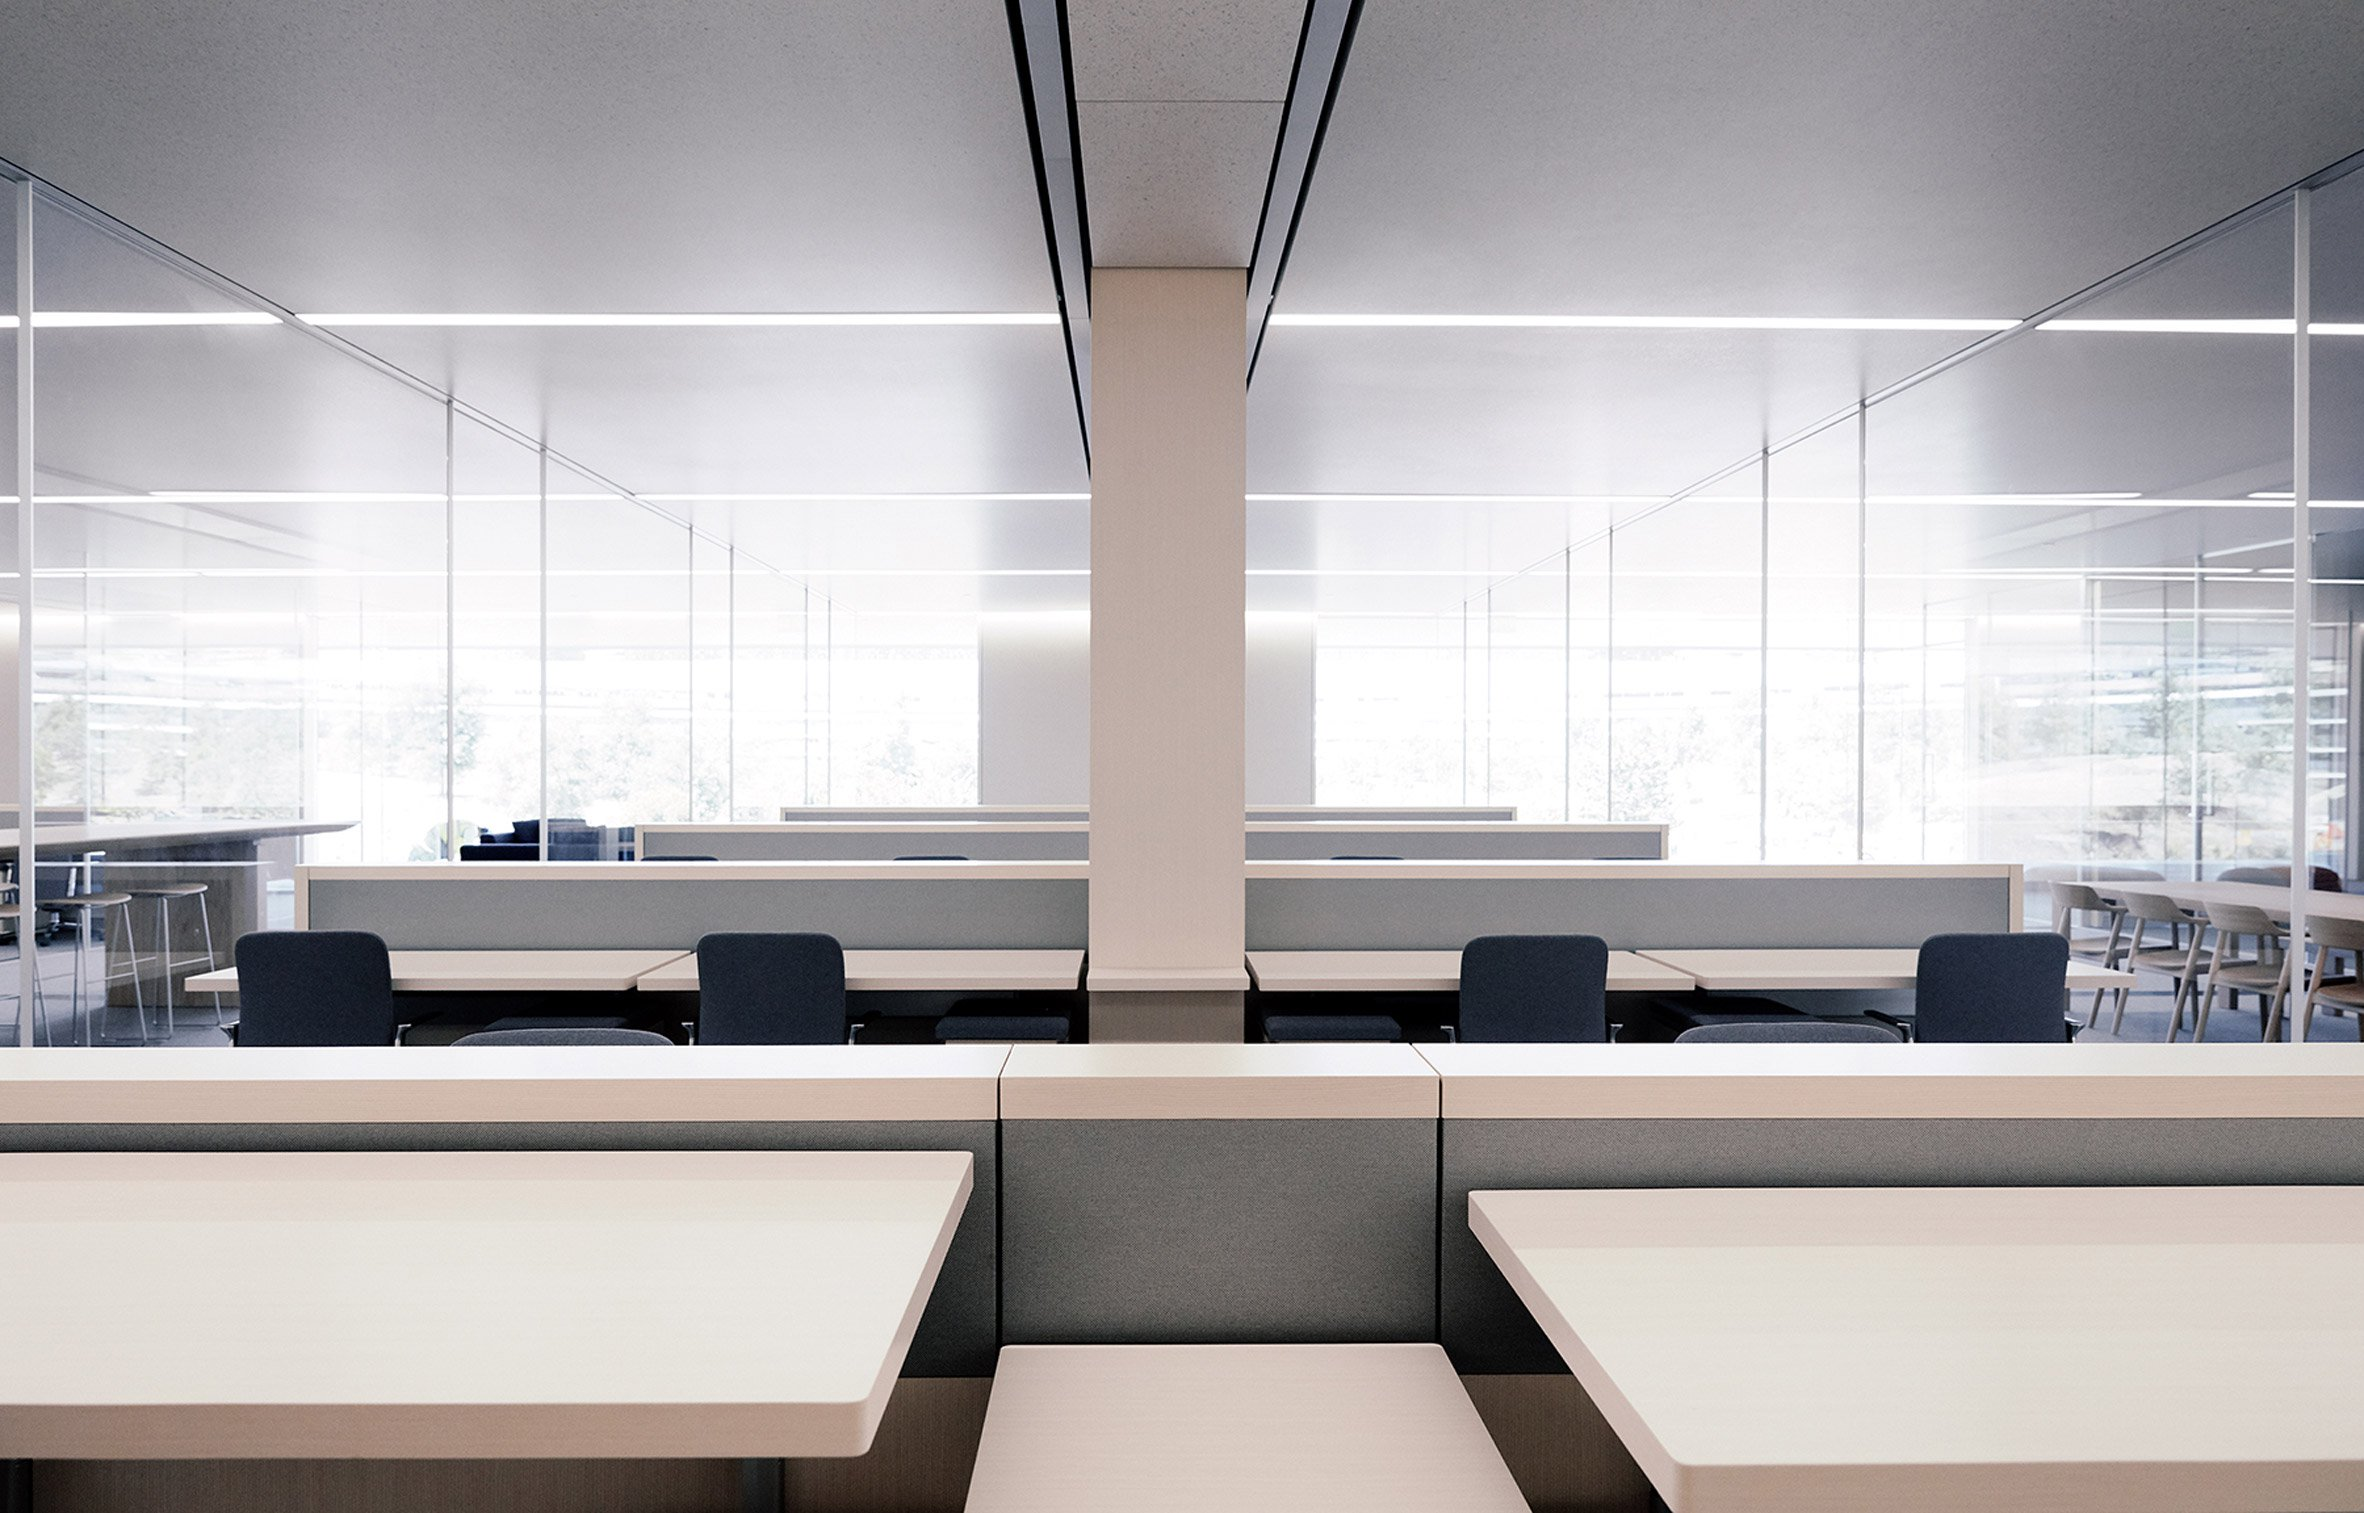 Apple Park employees revolt over having to work in open-plan offices